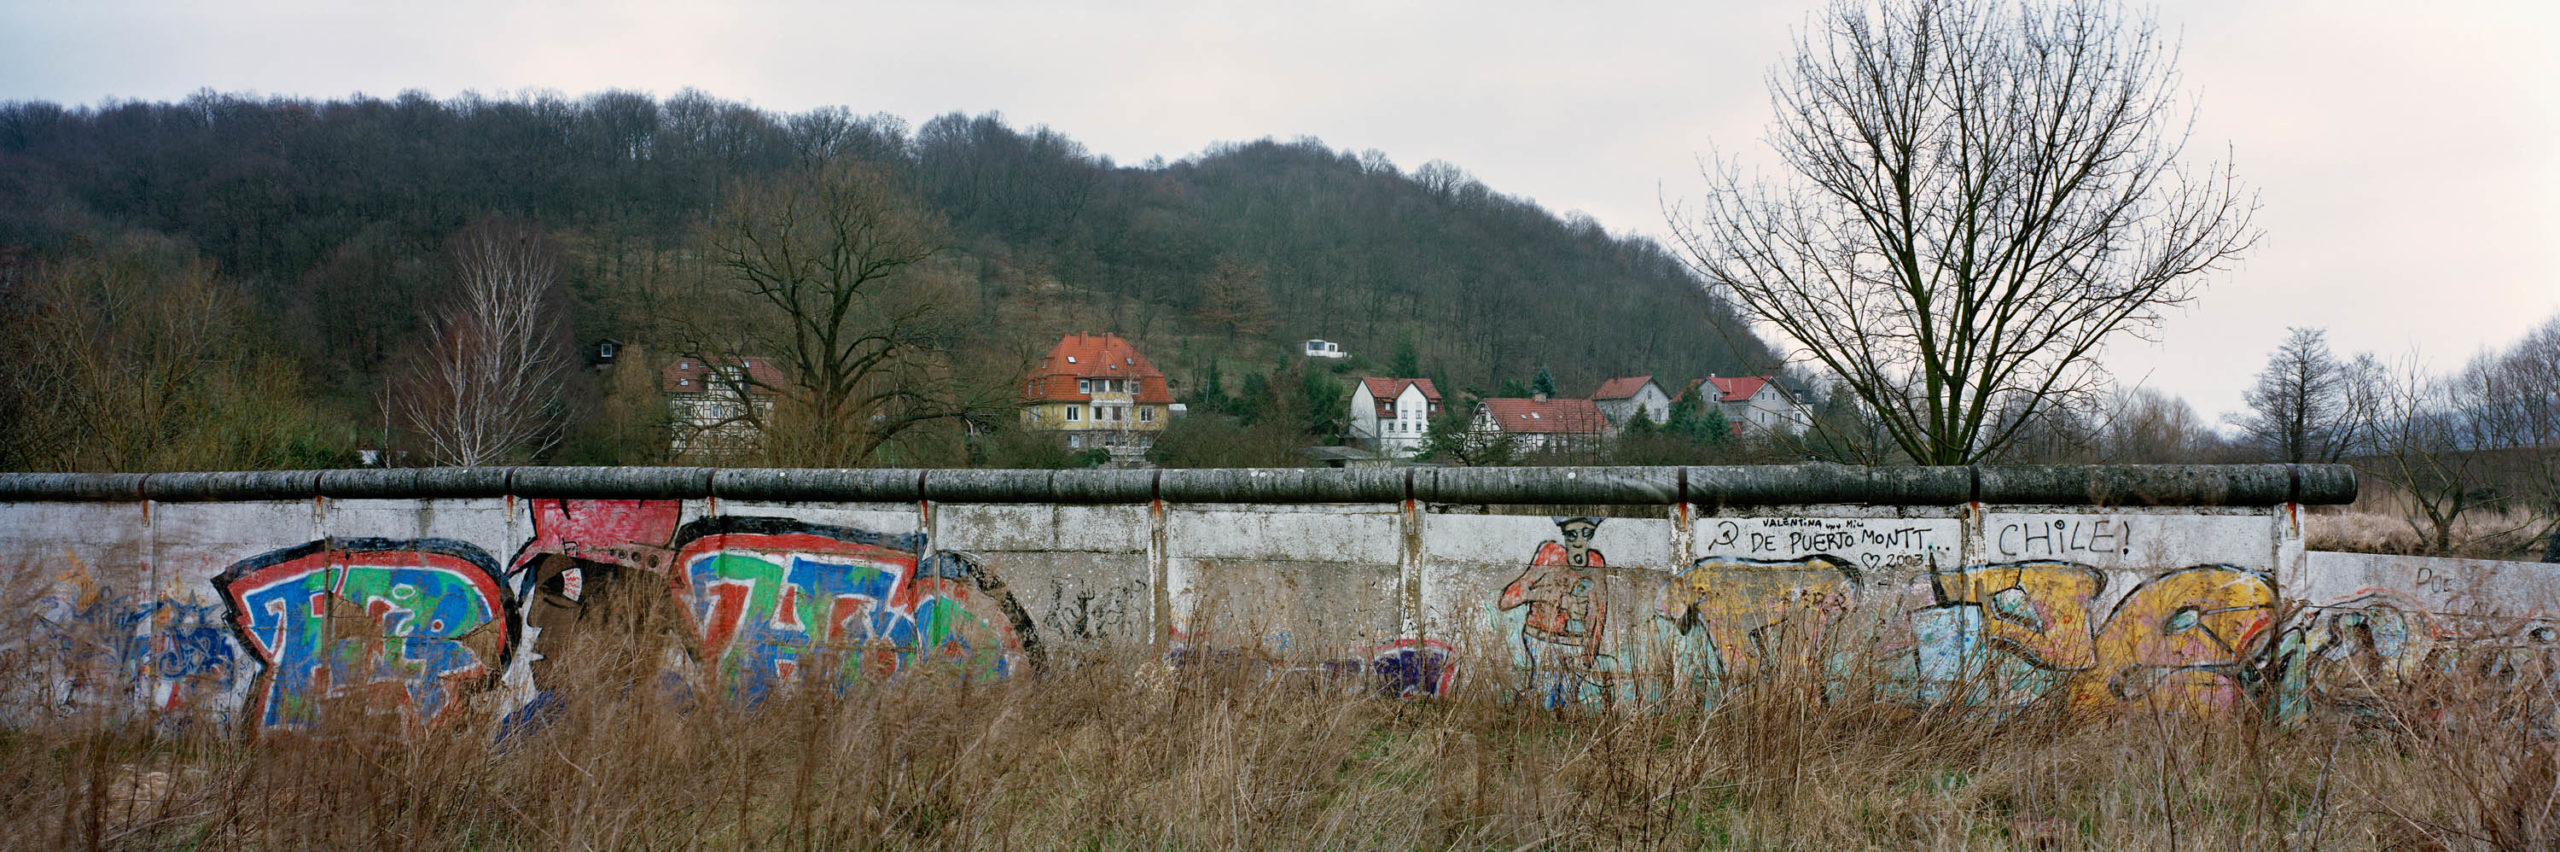 Border between East and West Germany